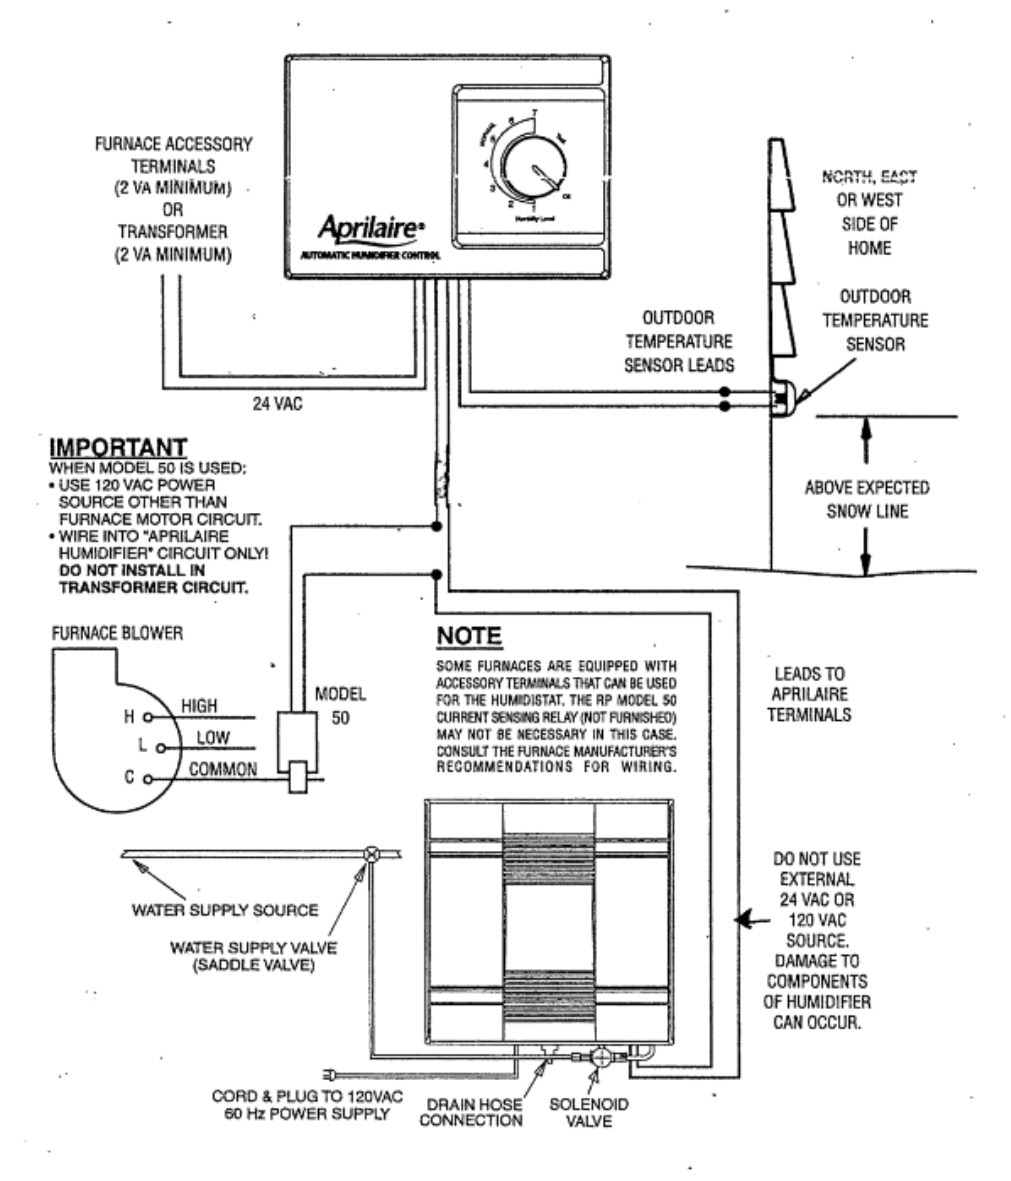 aprilaire thermostat wiring diagram